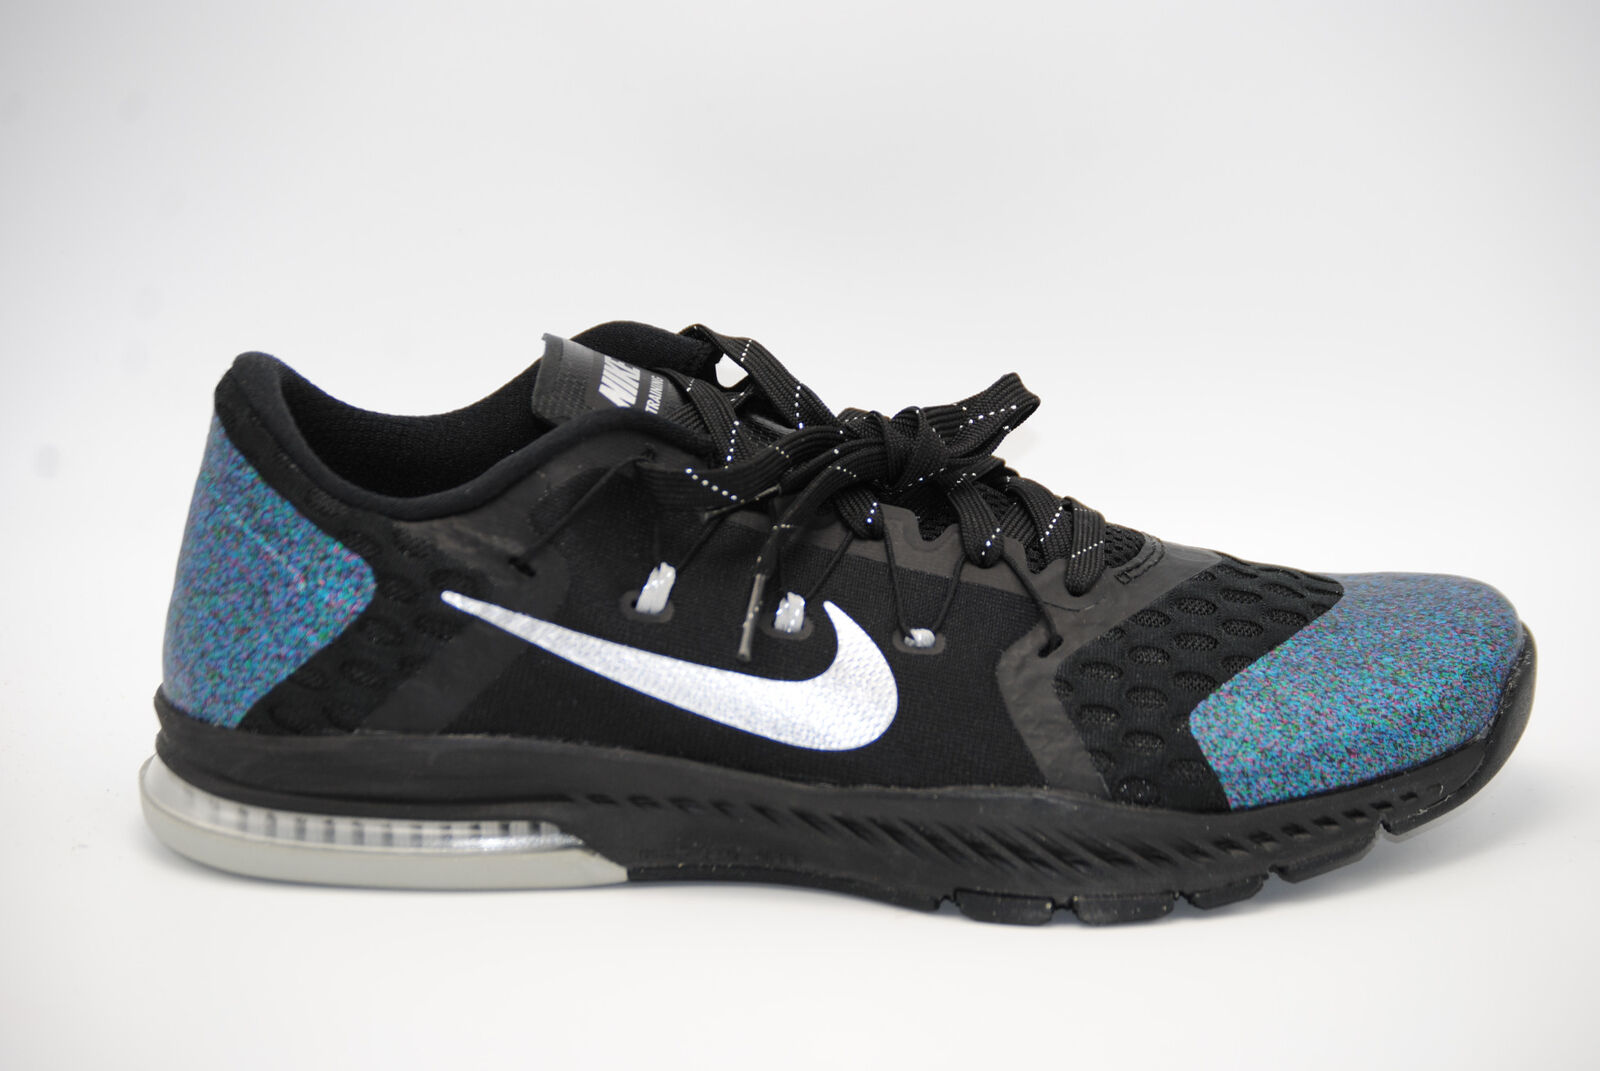 Nike Zoom Train Complete Amp Men's training shoe 001 Super Bowl edition 882152 001 shoe acc88a